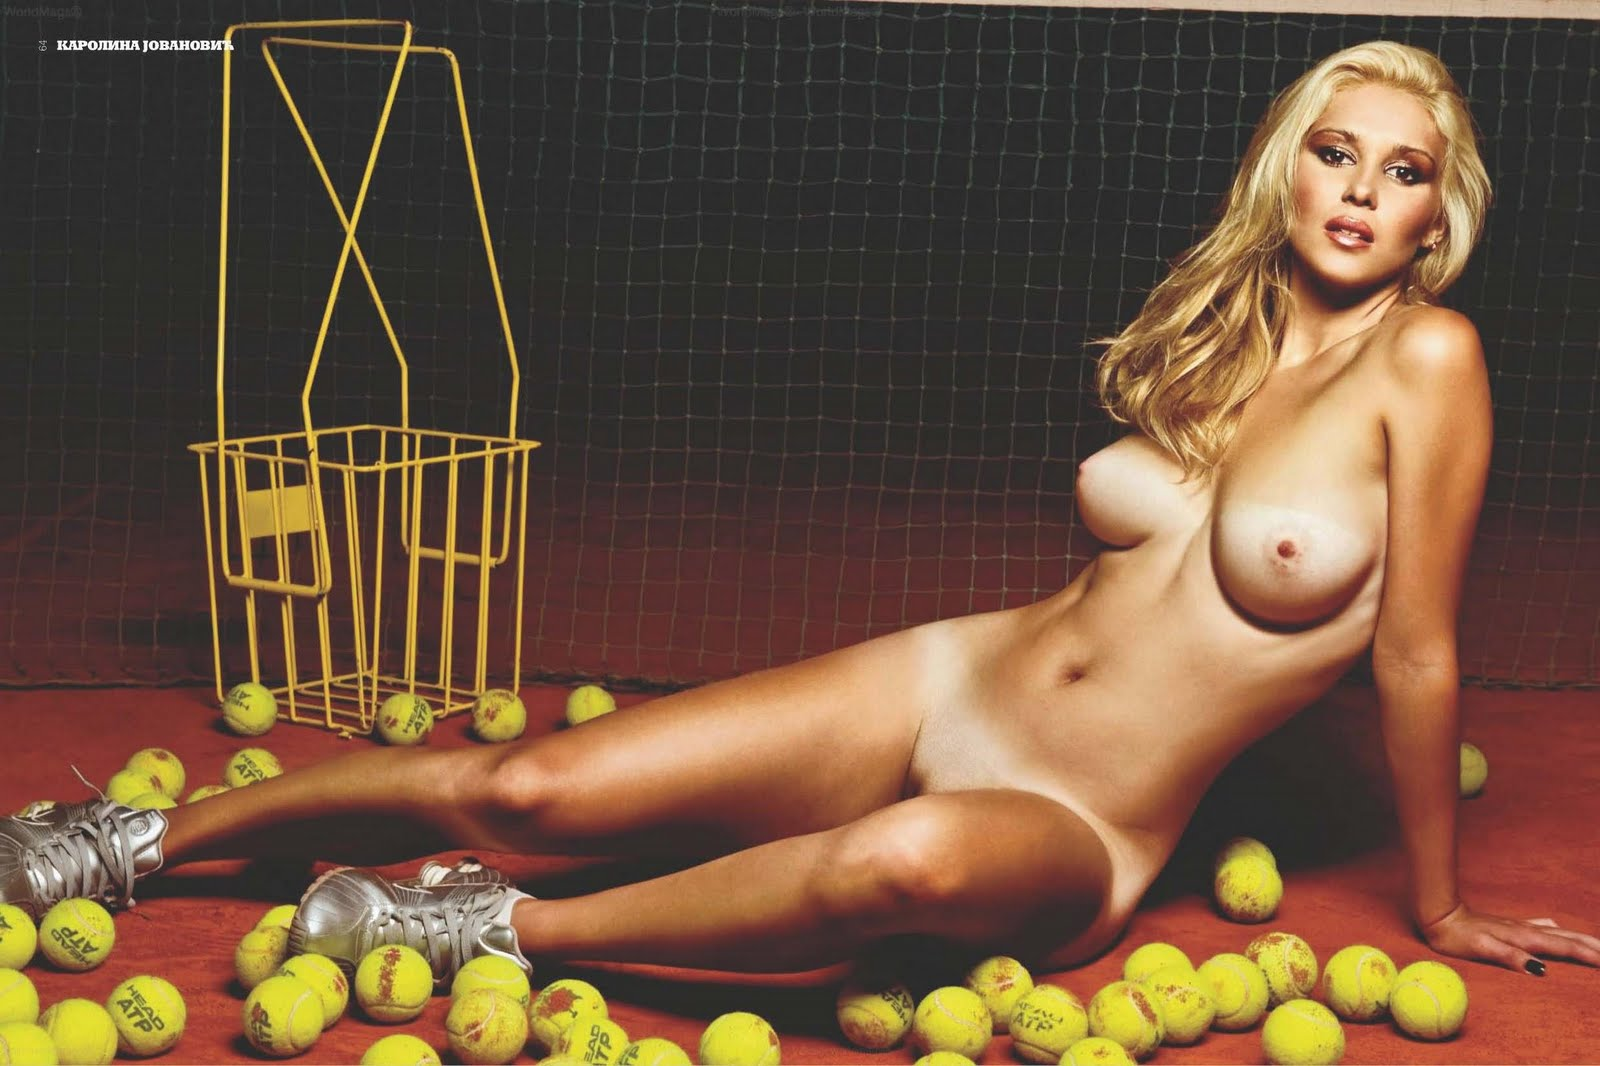 Love naked sports celebs